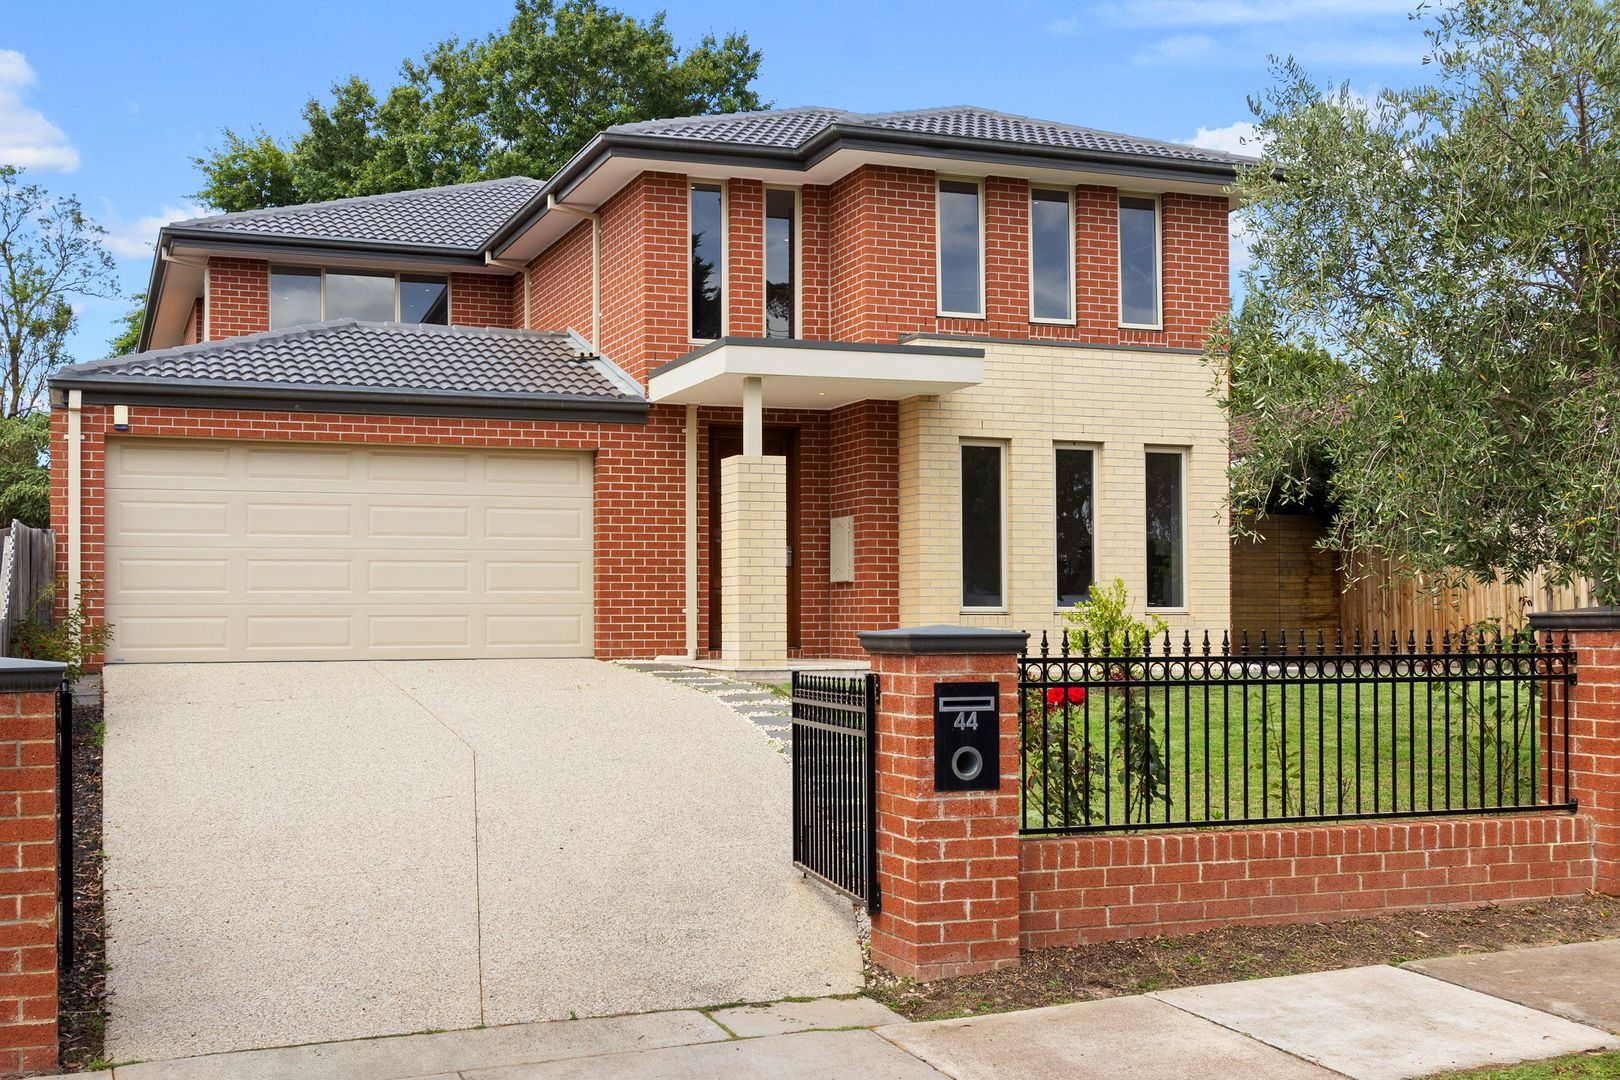 44 Hibiscus Road, Blackburn North VIC 3130, Image 0